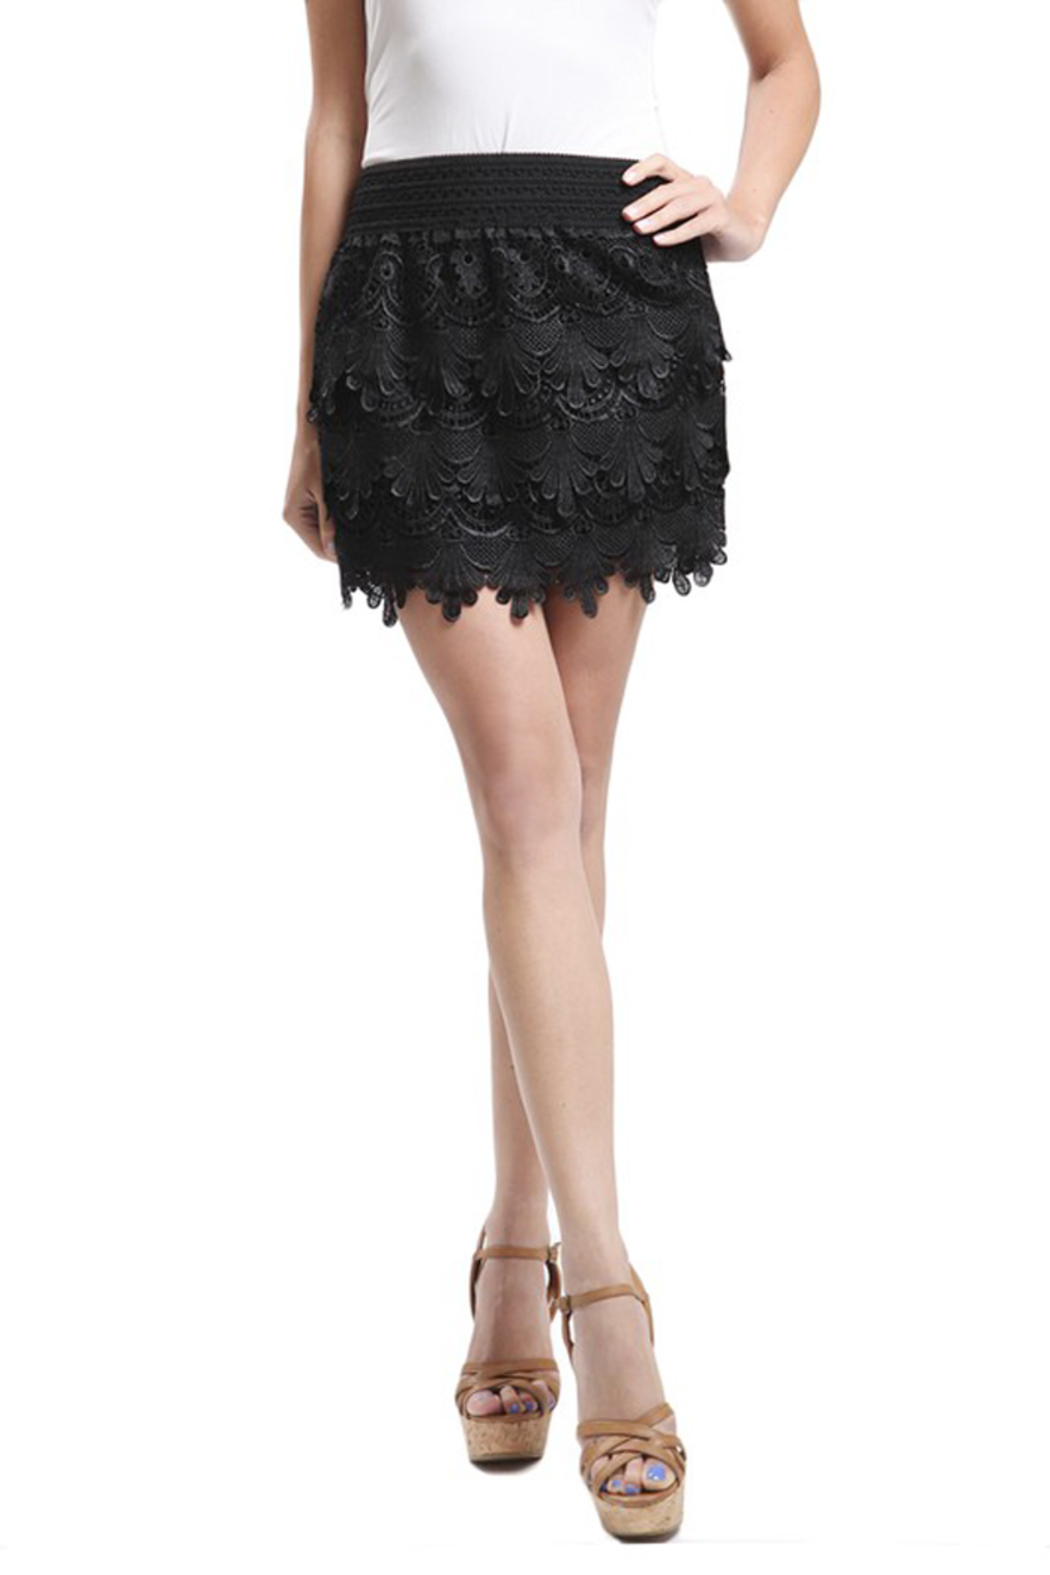 Blu Pepper Black Woven Lace Skirt - Main Image